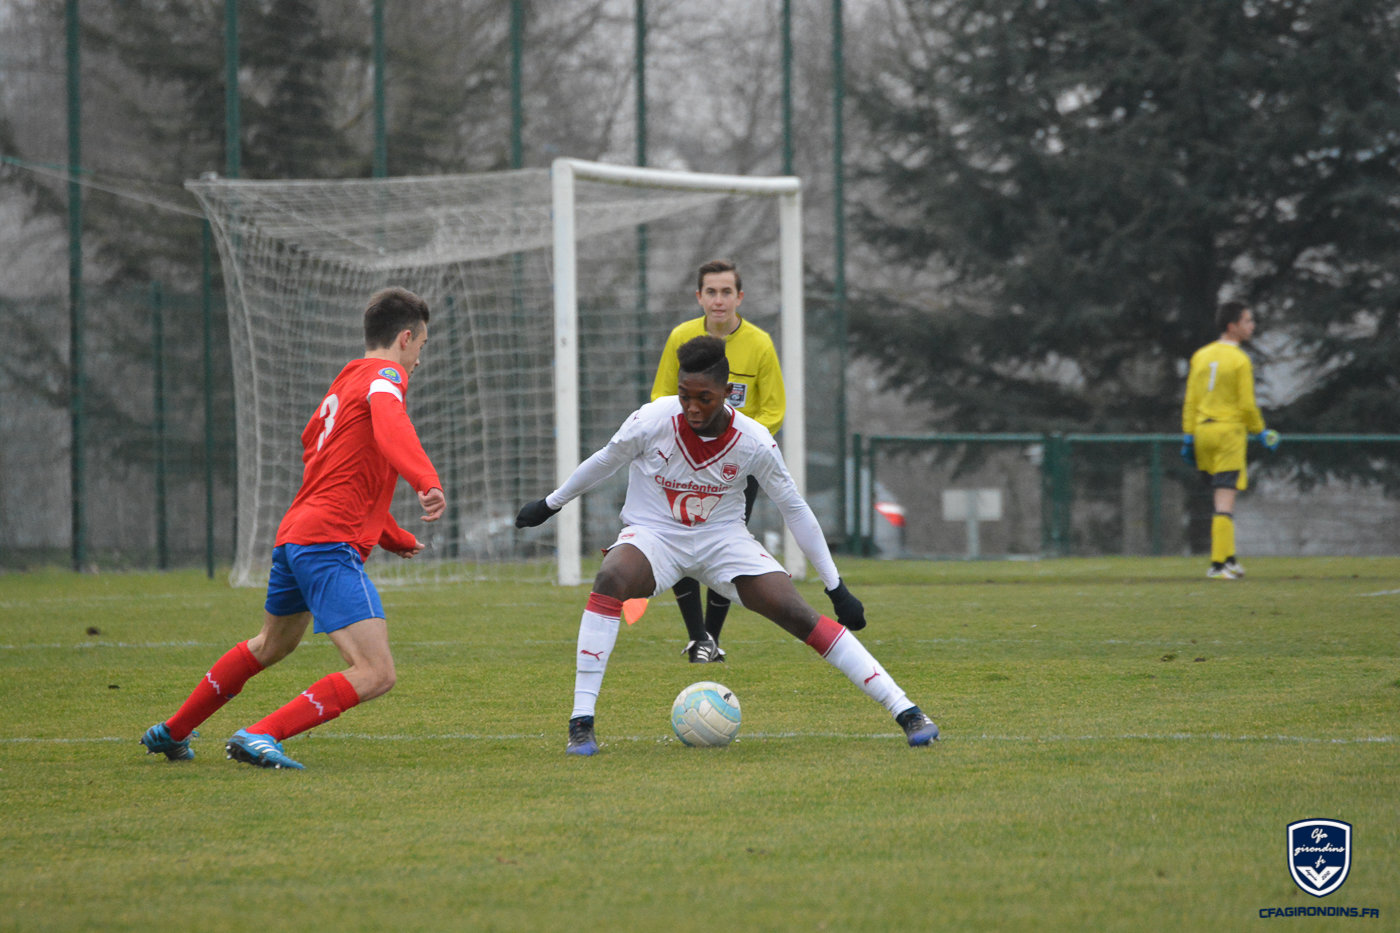 Cfa Girondins : Victoire contre le Bassin d'Arcachon (0-3) - Formation Girondins